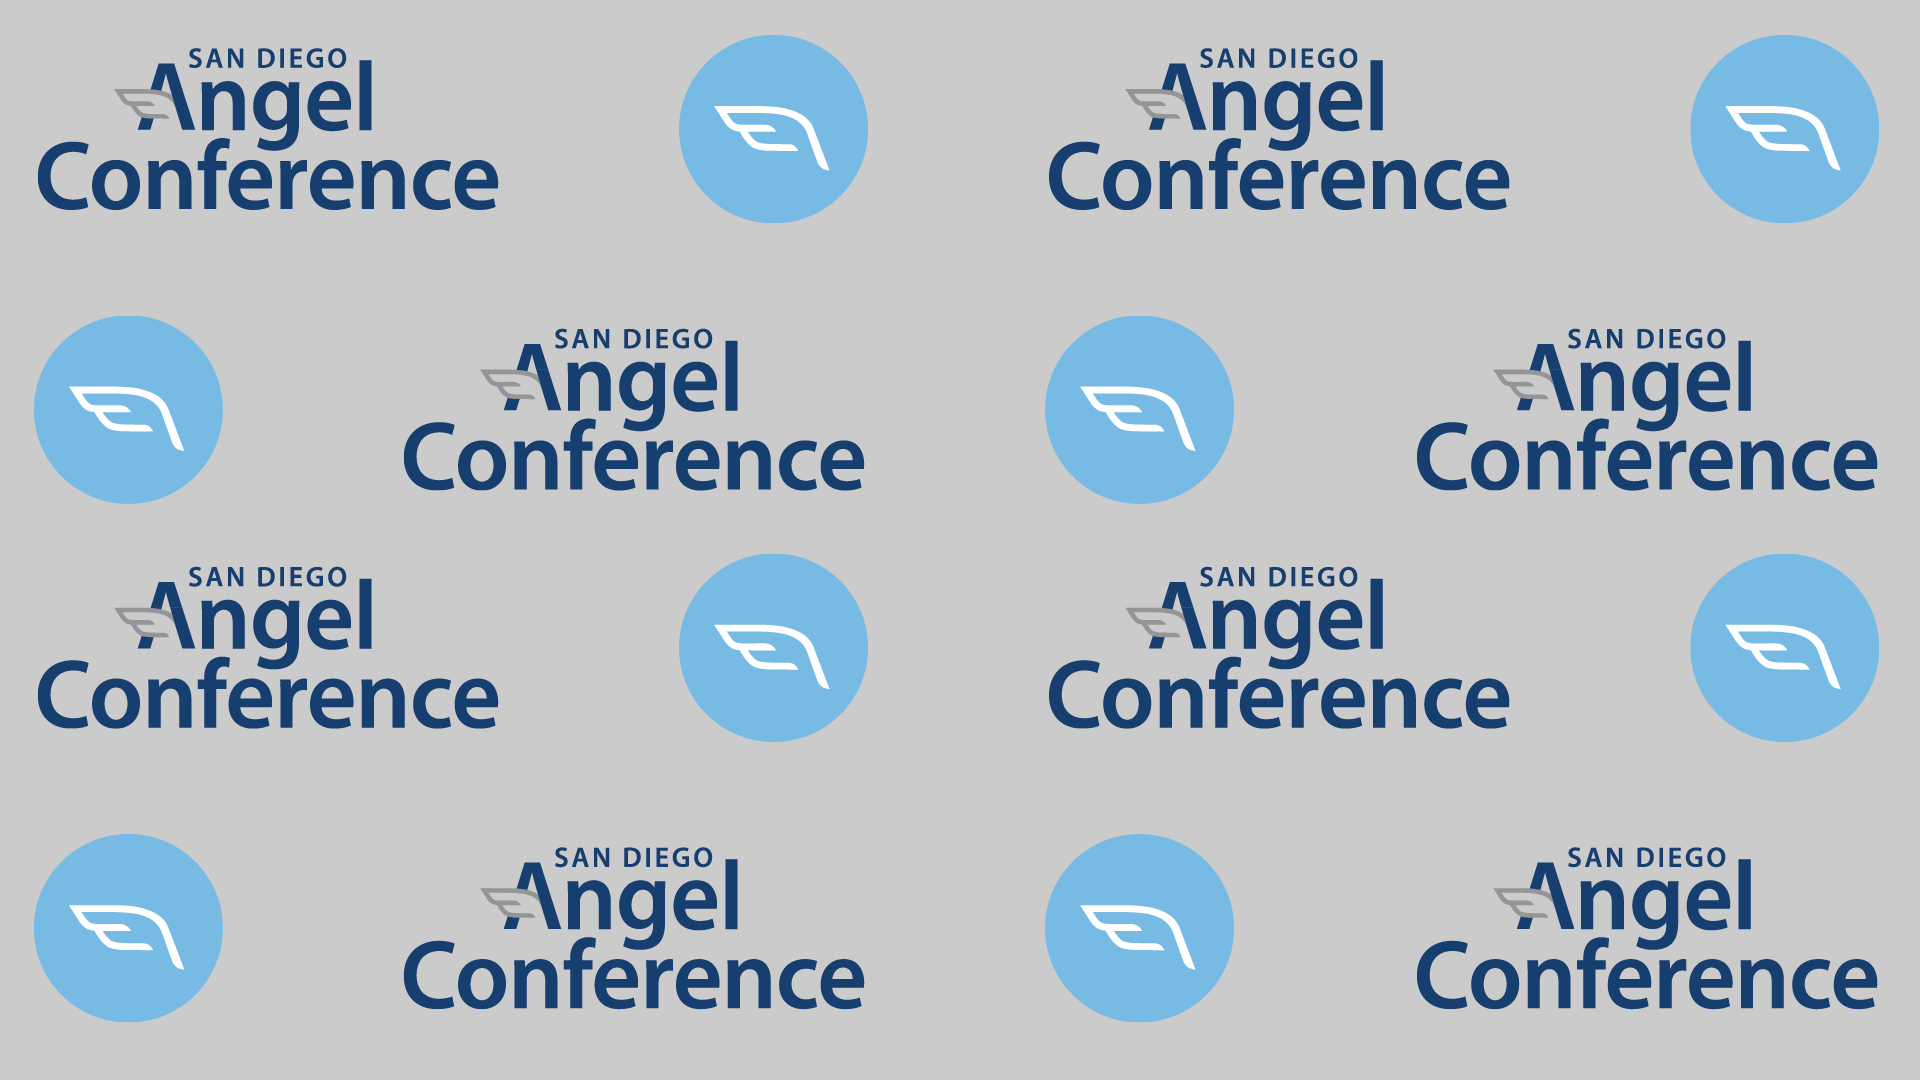 San Diego Angel Conference Logo